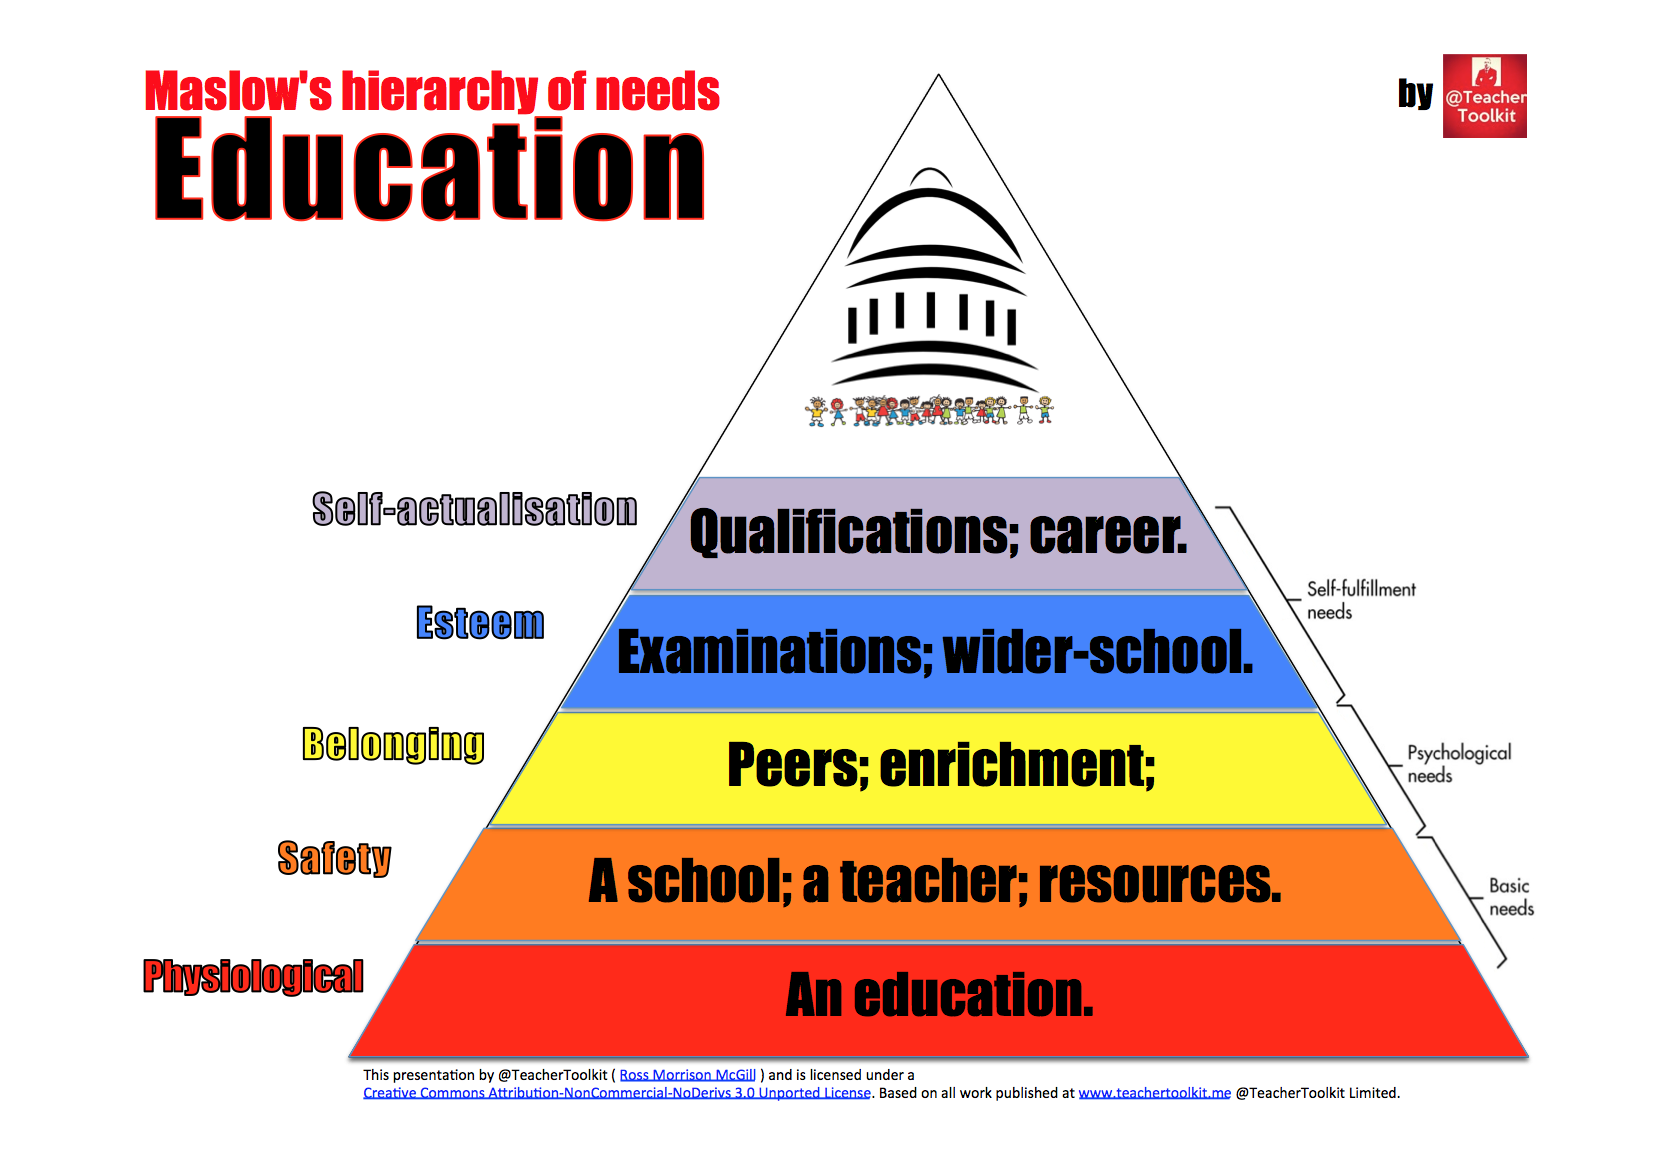 maslows hierarchy Maslow's hierarchy of needs is a theory in psychology that abraham maslow proposed in his 1943 paper a theory of human motivation, which he subsequently extendedhis theory contends that as humans meet 'basic needs', they seek to satisfy successively 'higher needs' that occupy a set hierarchy.